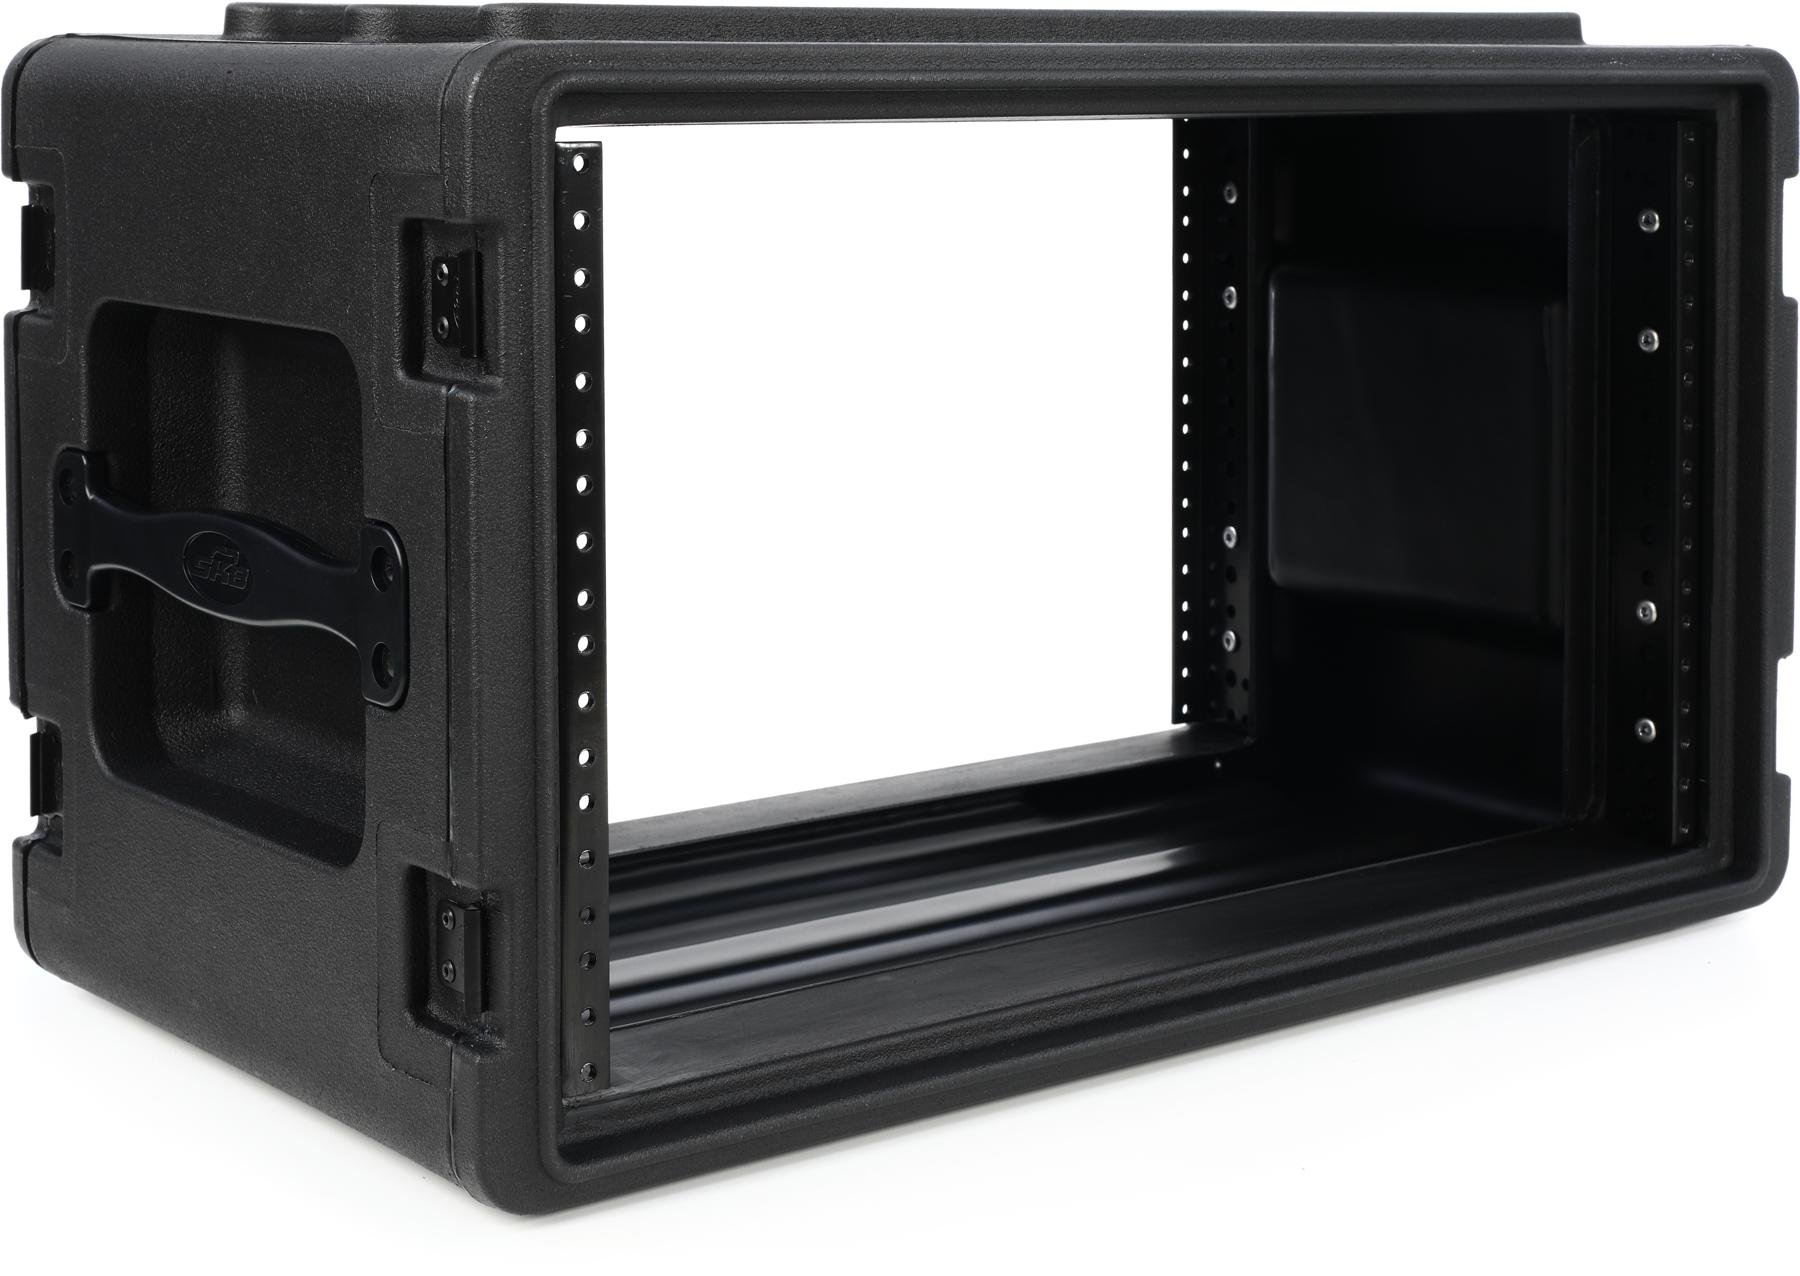 SKB 1SKB-R4S Roto-Molded Shallow Rack Case | Sweetwater